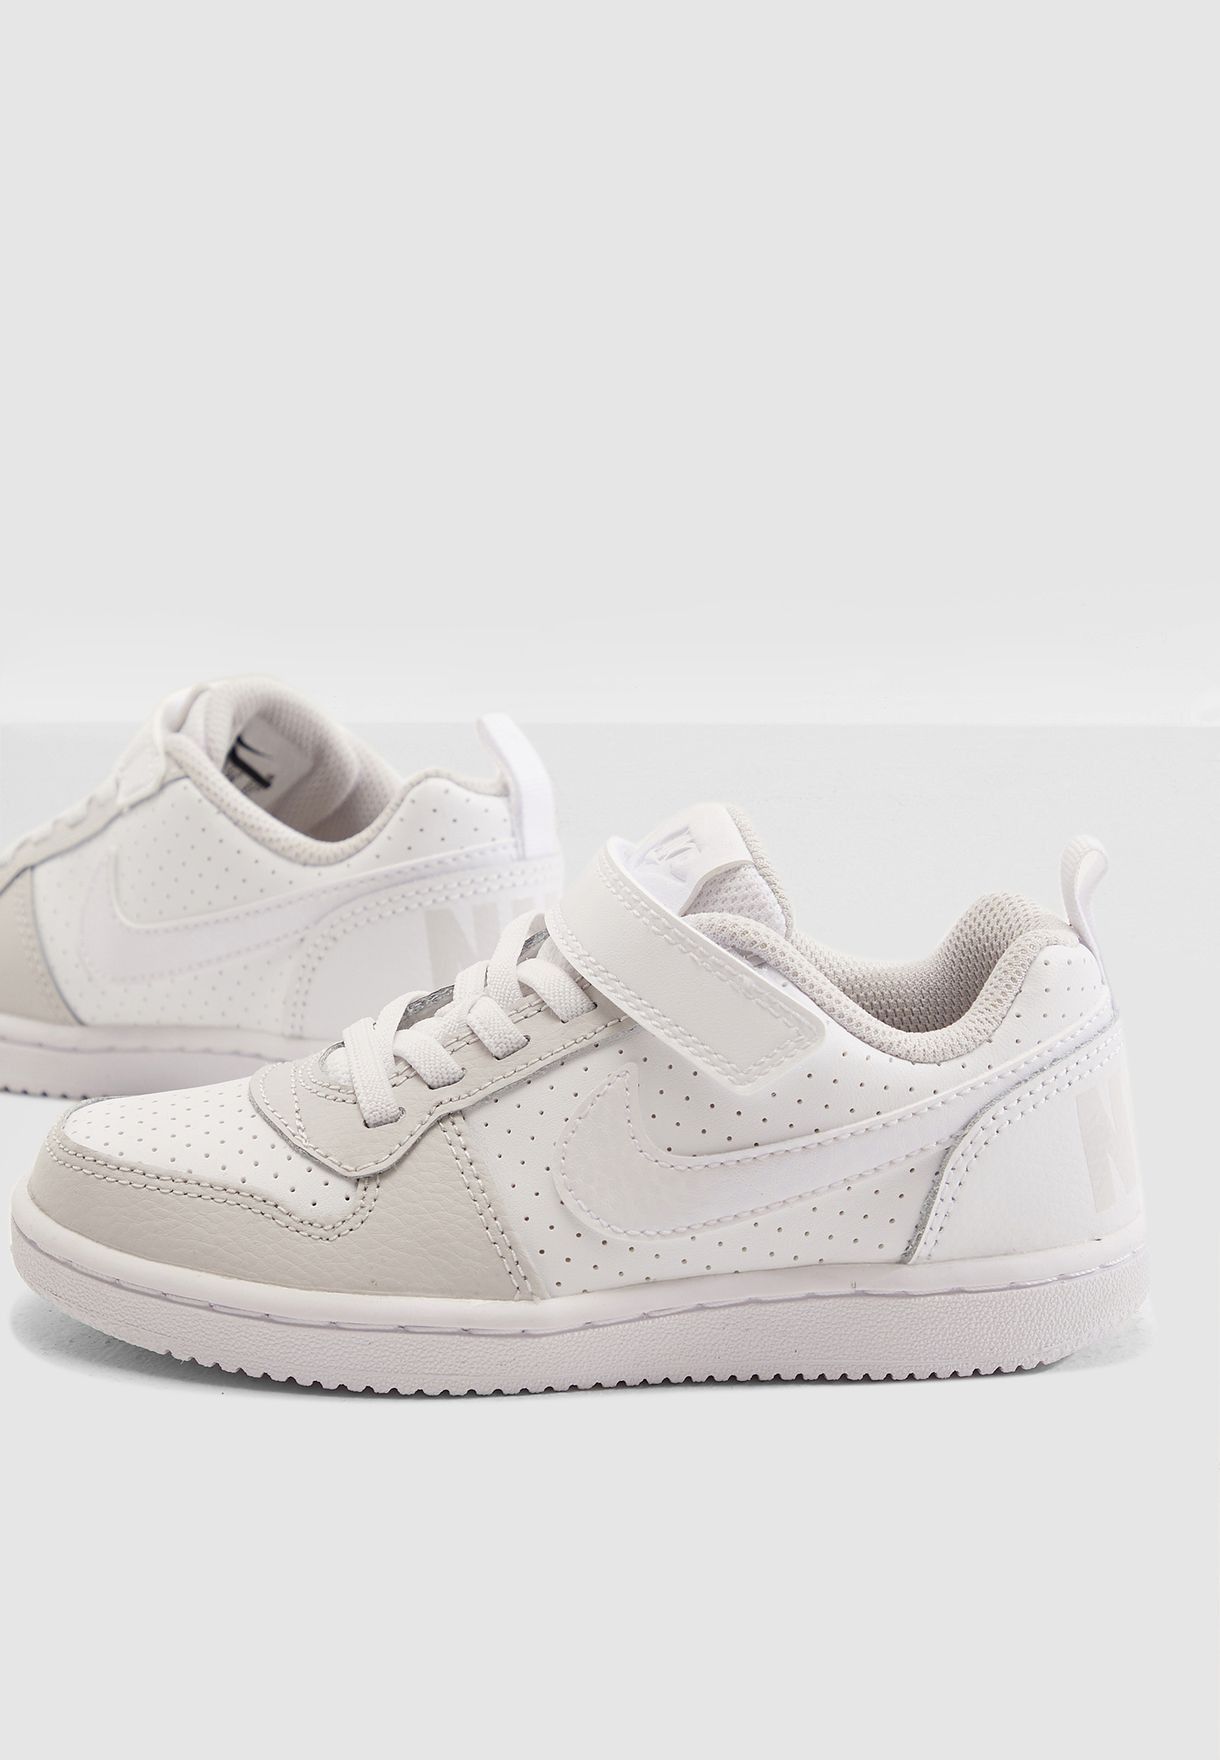 Shop Nike white Kids Court Borough Low 870028-104 for Kids in Saudi ... 346a1cab5